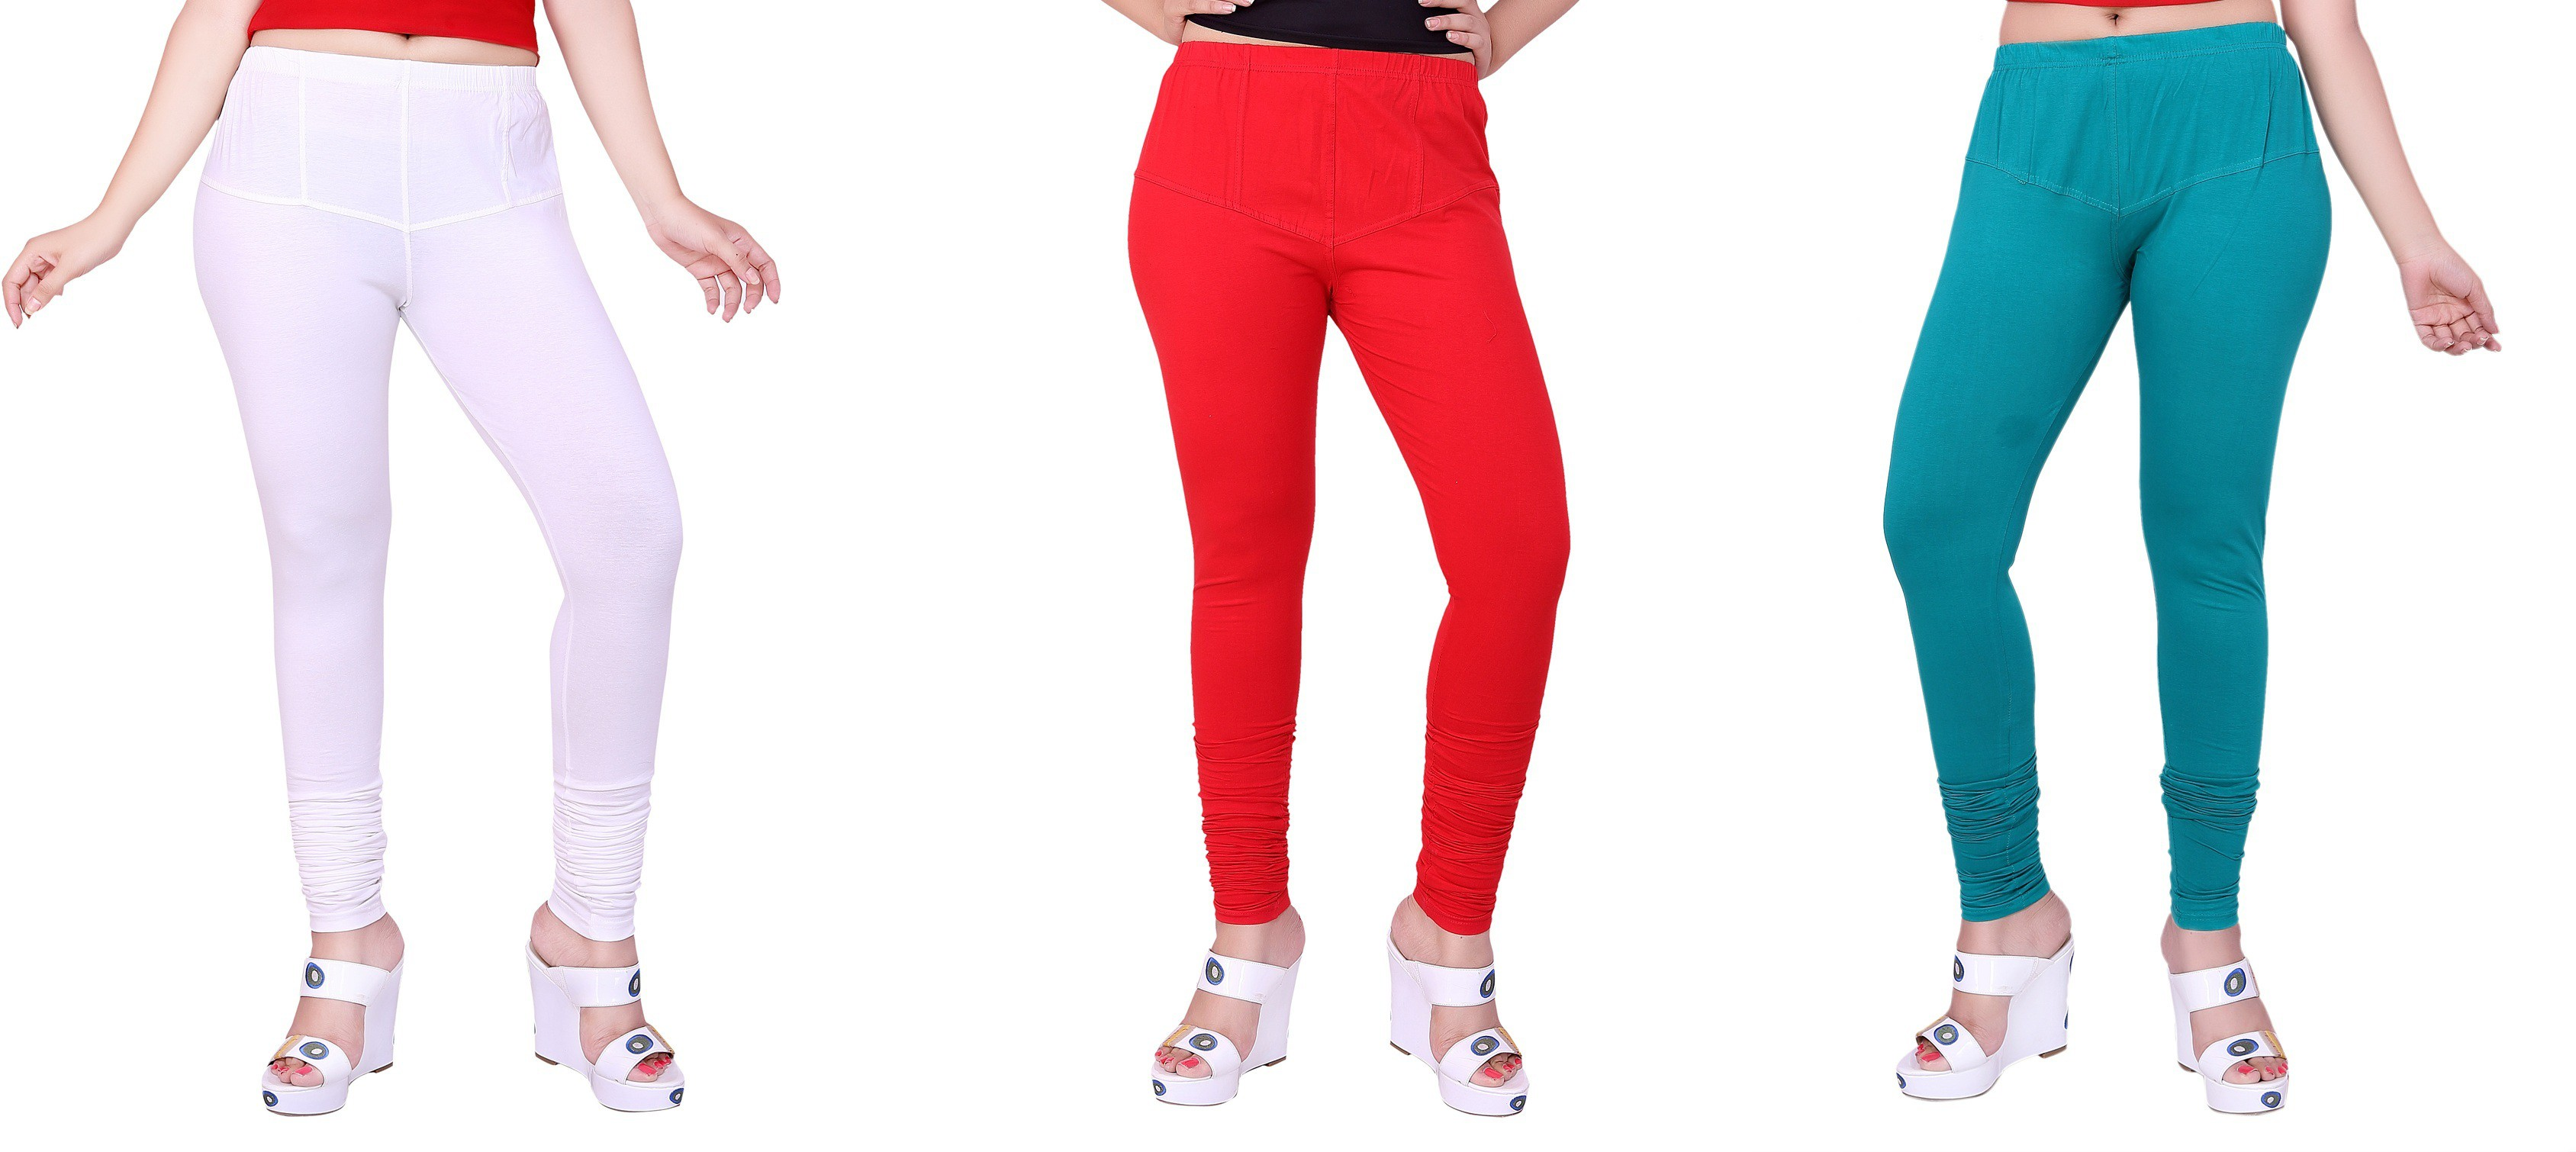 Fck3 Womens White, Red, Blue Leggings(Pack of 3)